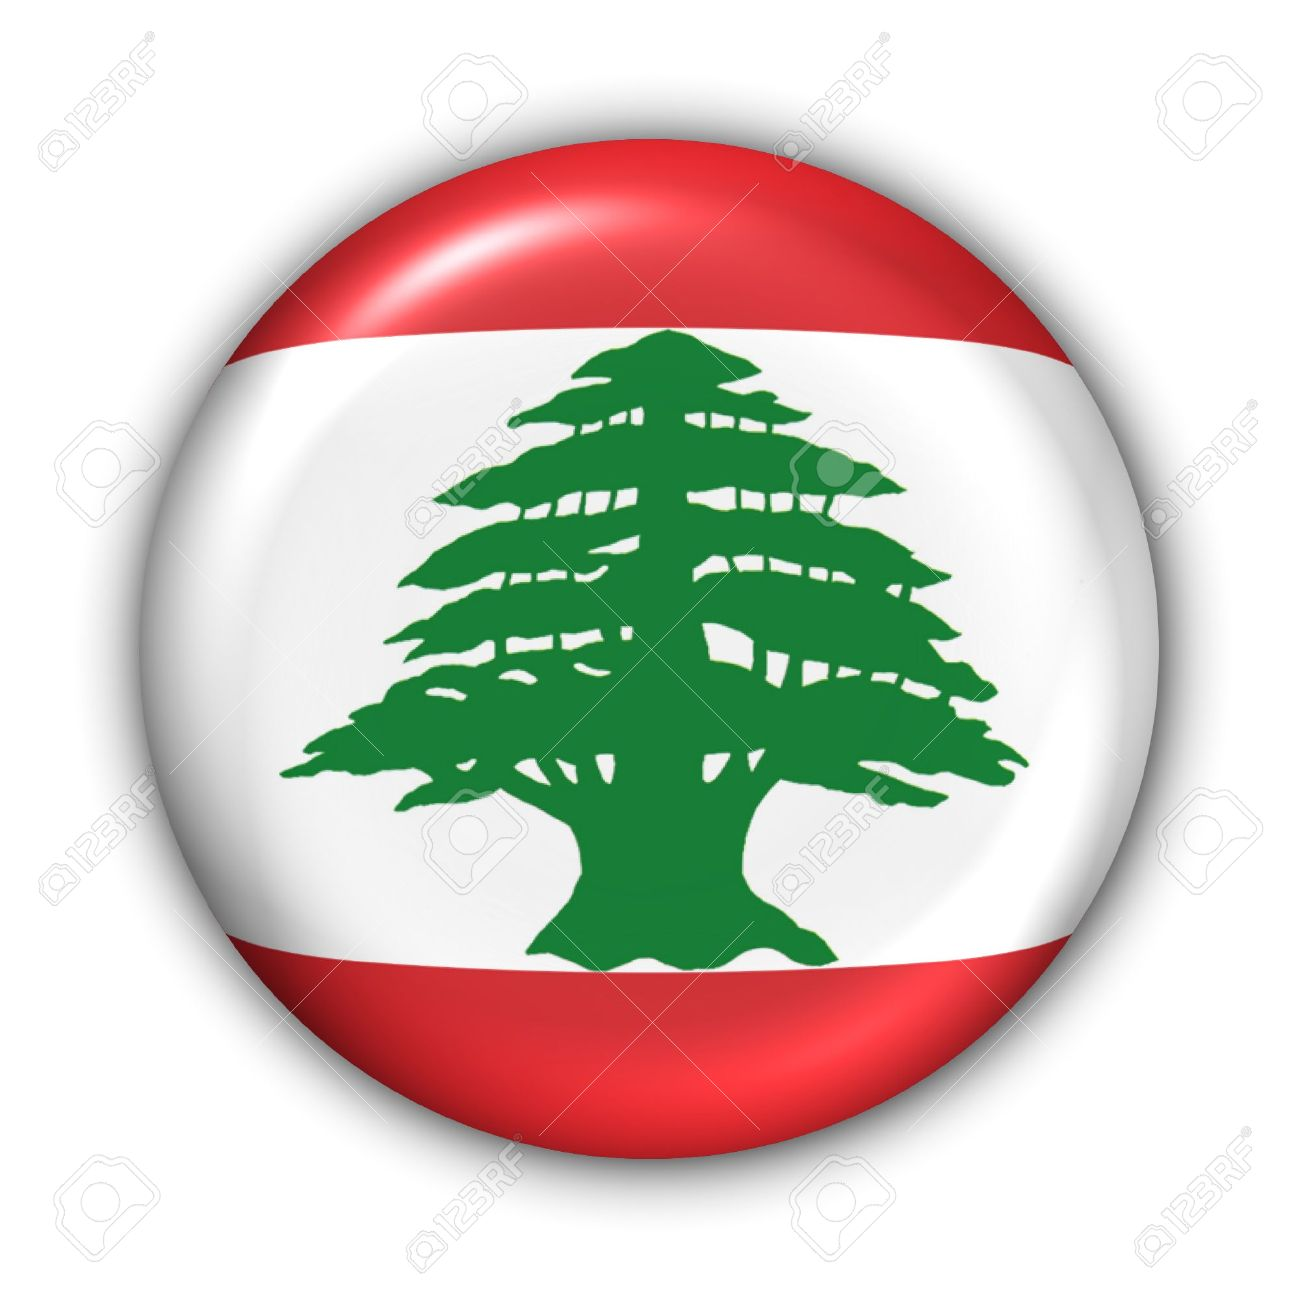 World Flag Button Series - Asia/Middle East - Lebanon (With Clipping Path) - 373993